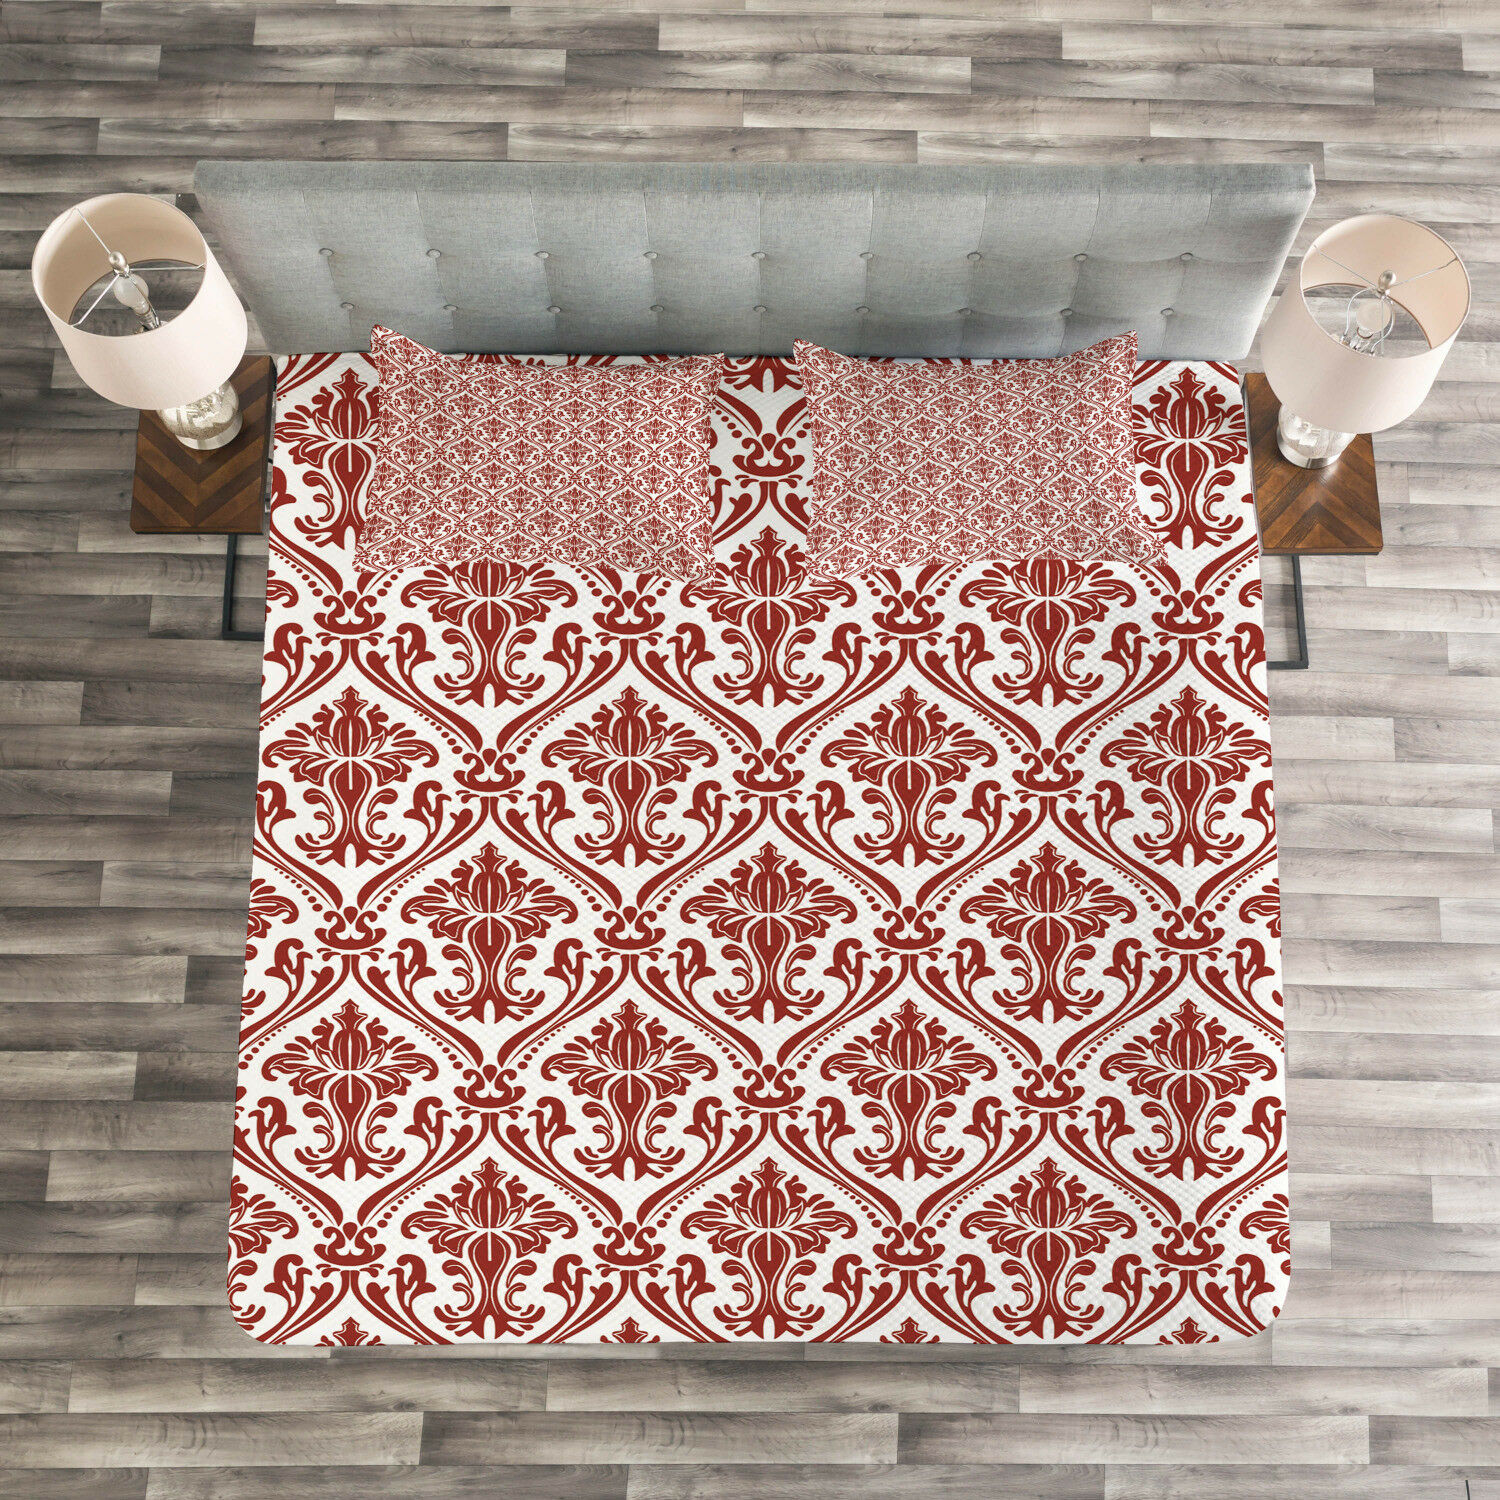 Damask Quilted Bedspread & Pillow Shams Set, Middle East Influences Print